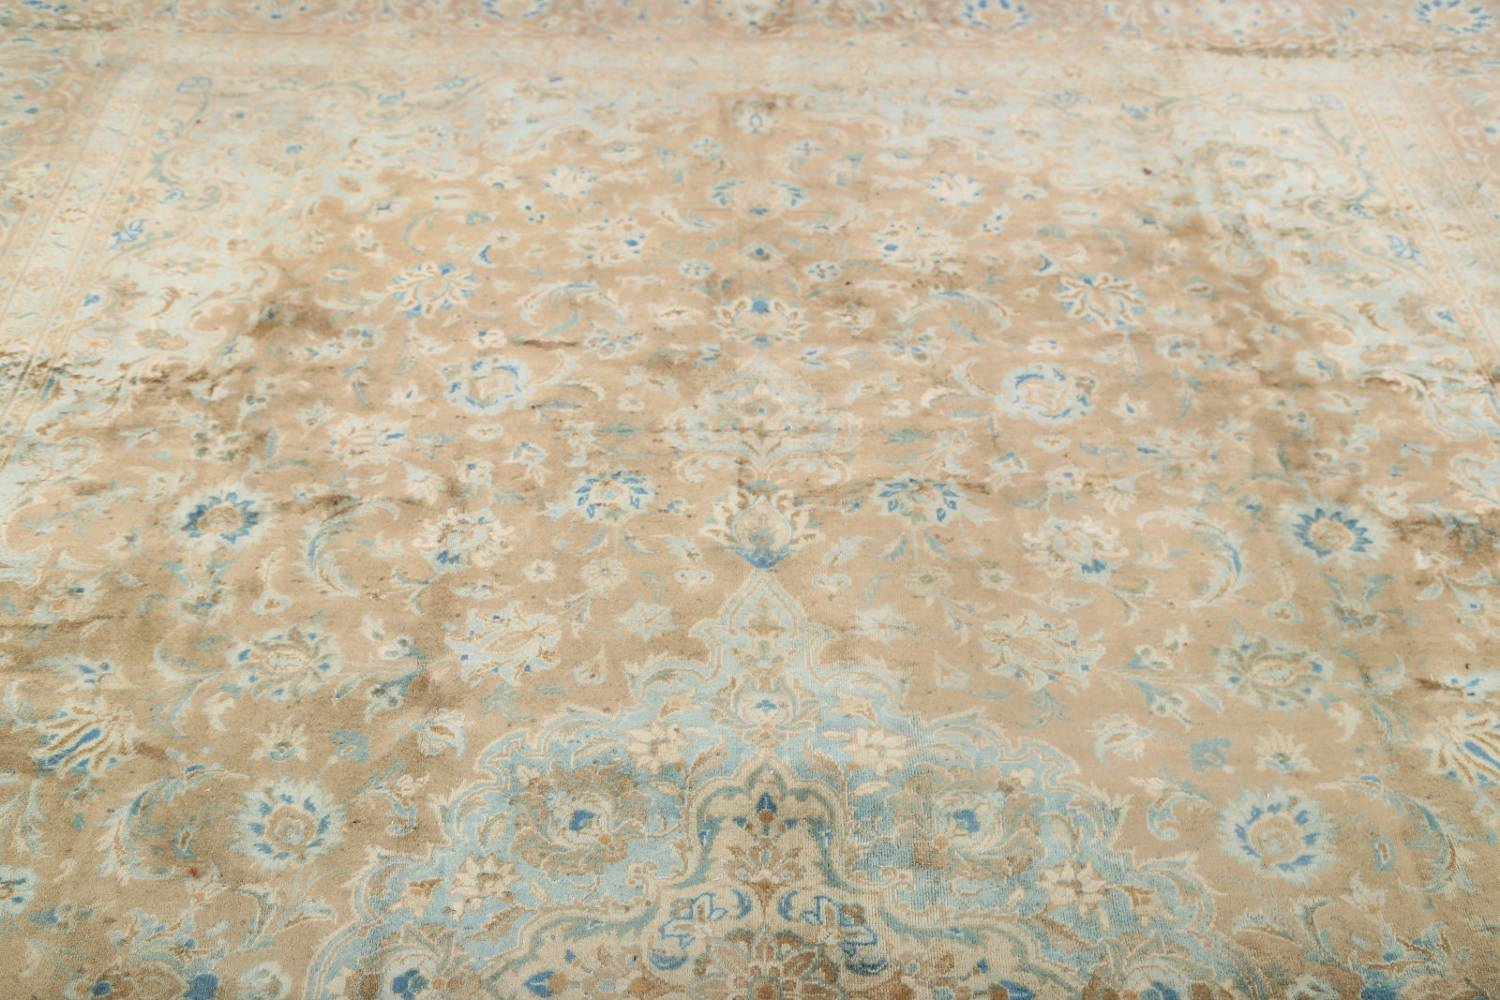 Antique Muted Distressed Kashan Persian Area Rug 9x13 image 18